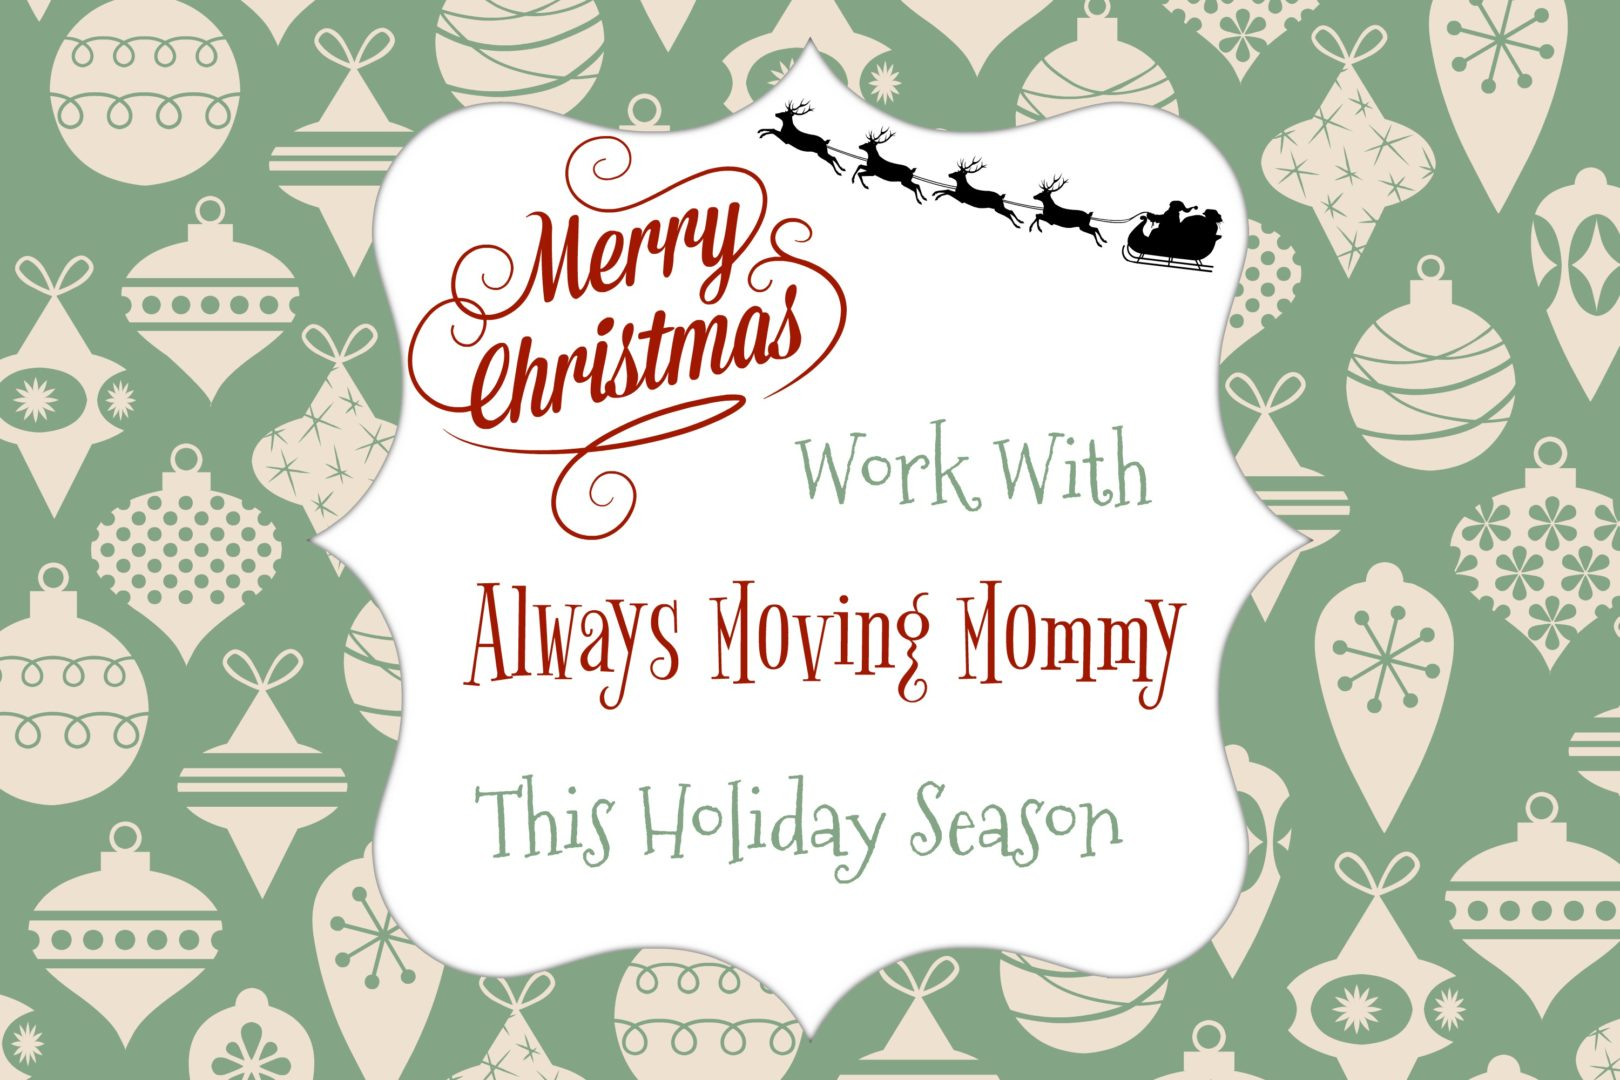 Work With Always Moving Mommy This Holiday Season | Always Moving Mommy | Have a great product or service you'd like to share with the world? We can help with that!